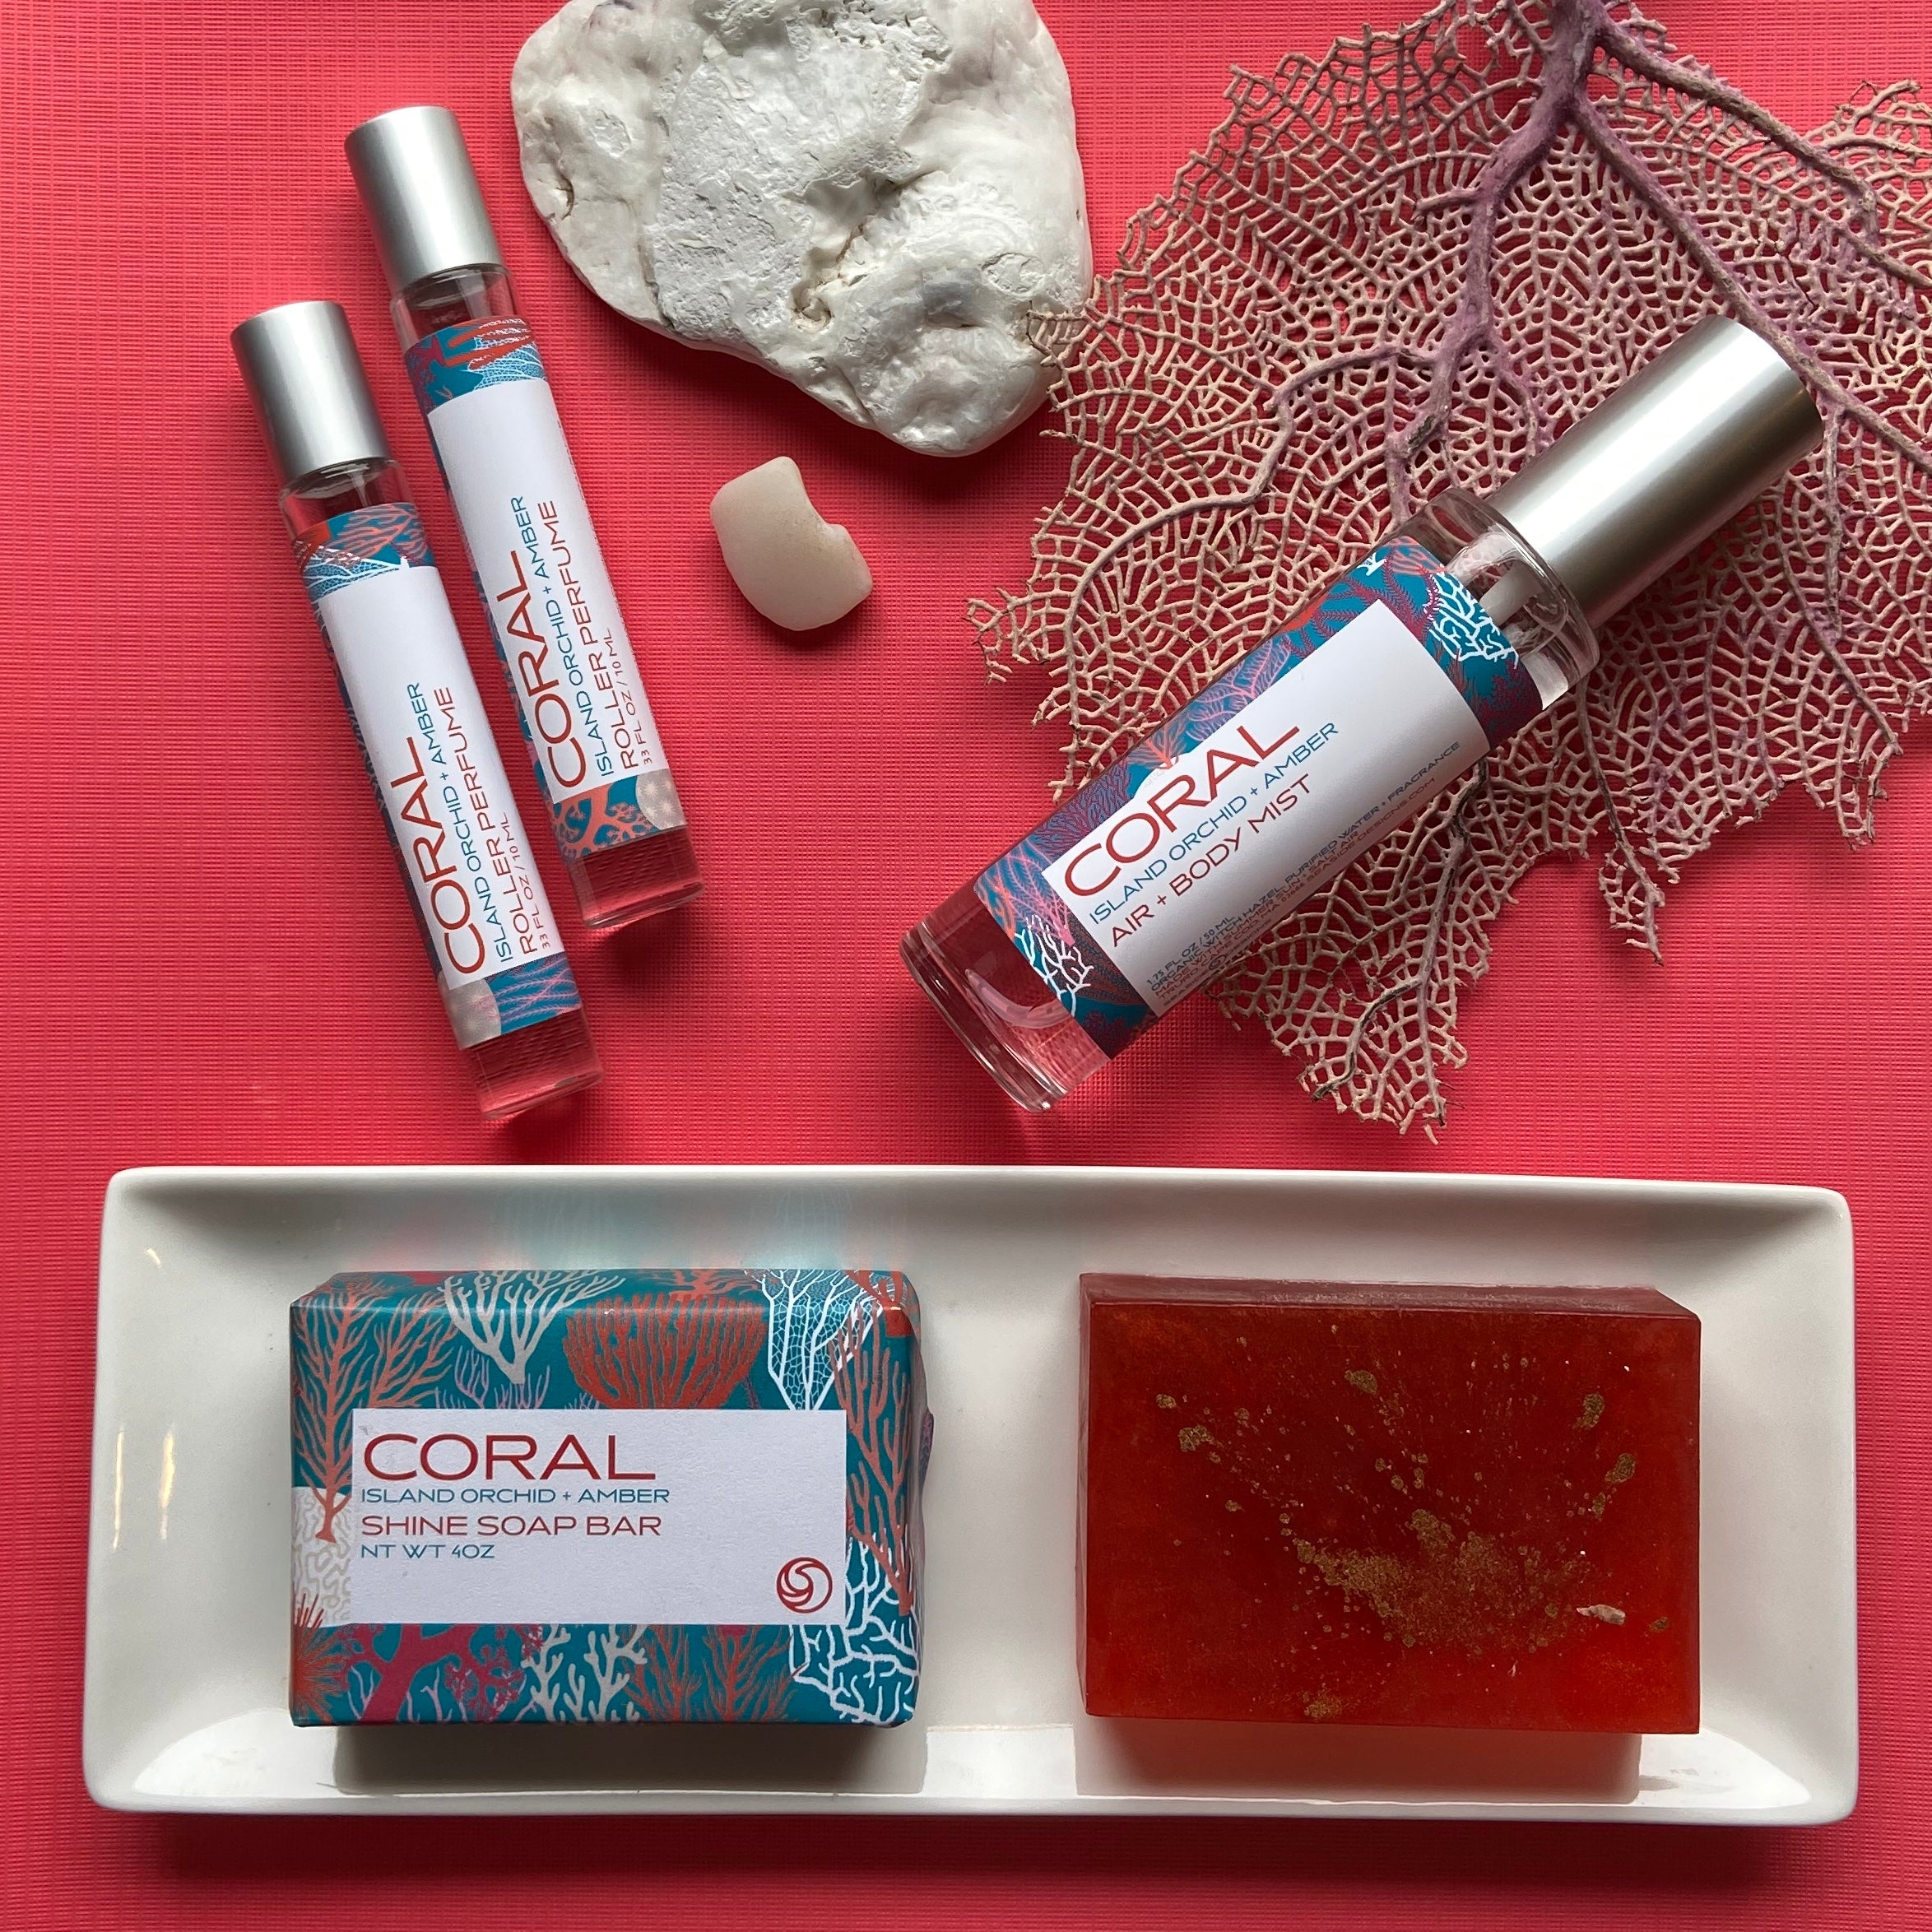 CORAL Roller Perfume